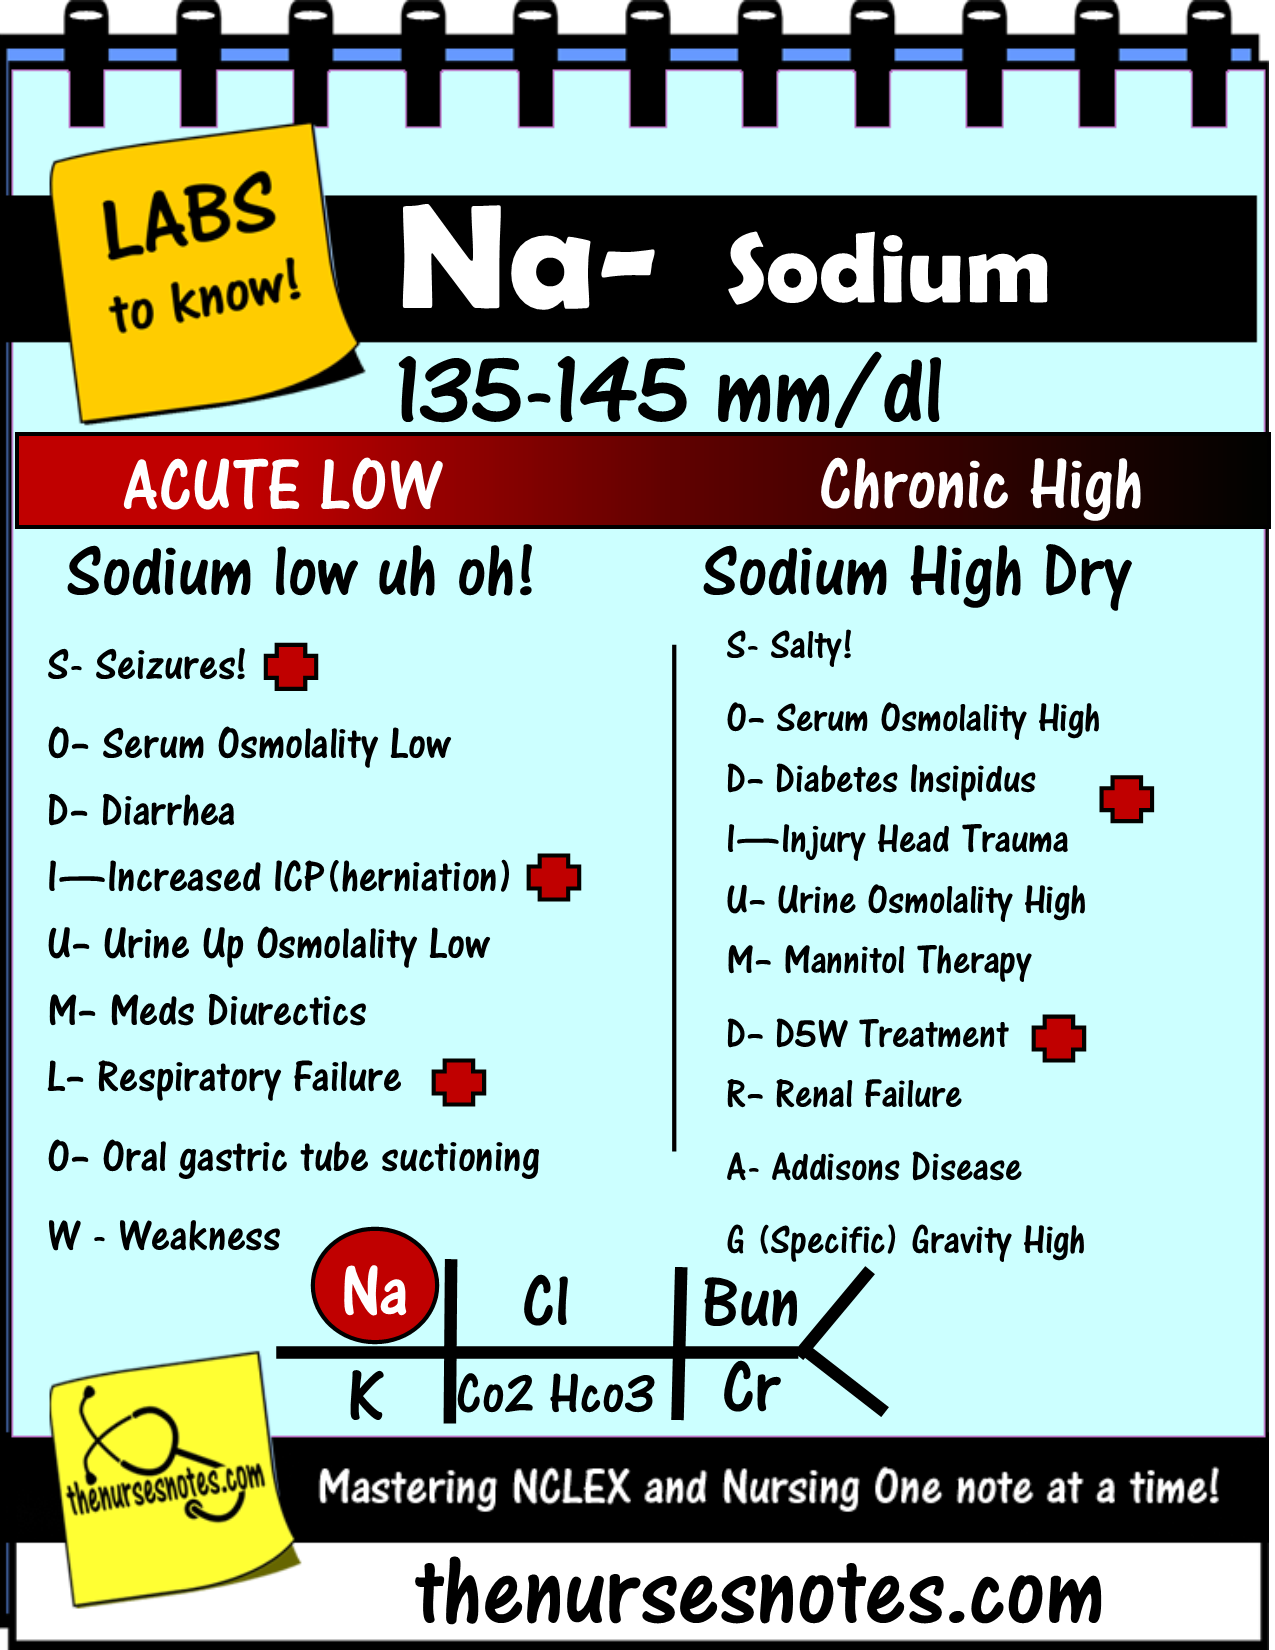 Hyponatremia Sodium Lab Value Blood Hyponatremia Mnemonic Nursing Student This Is A Collection